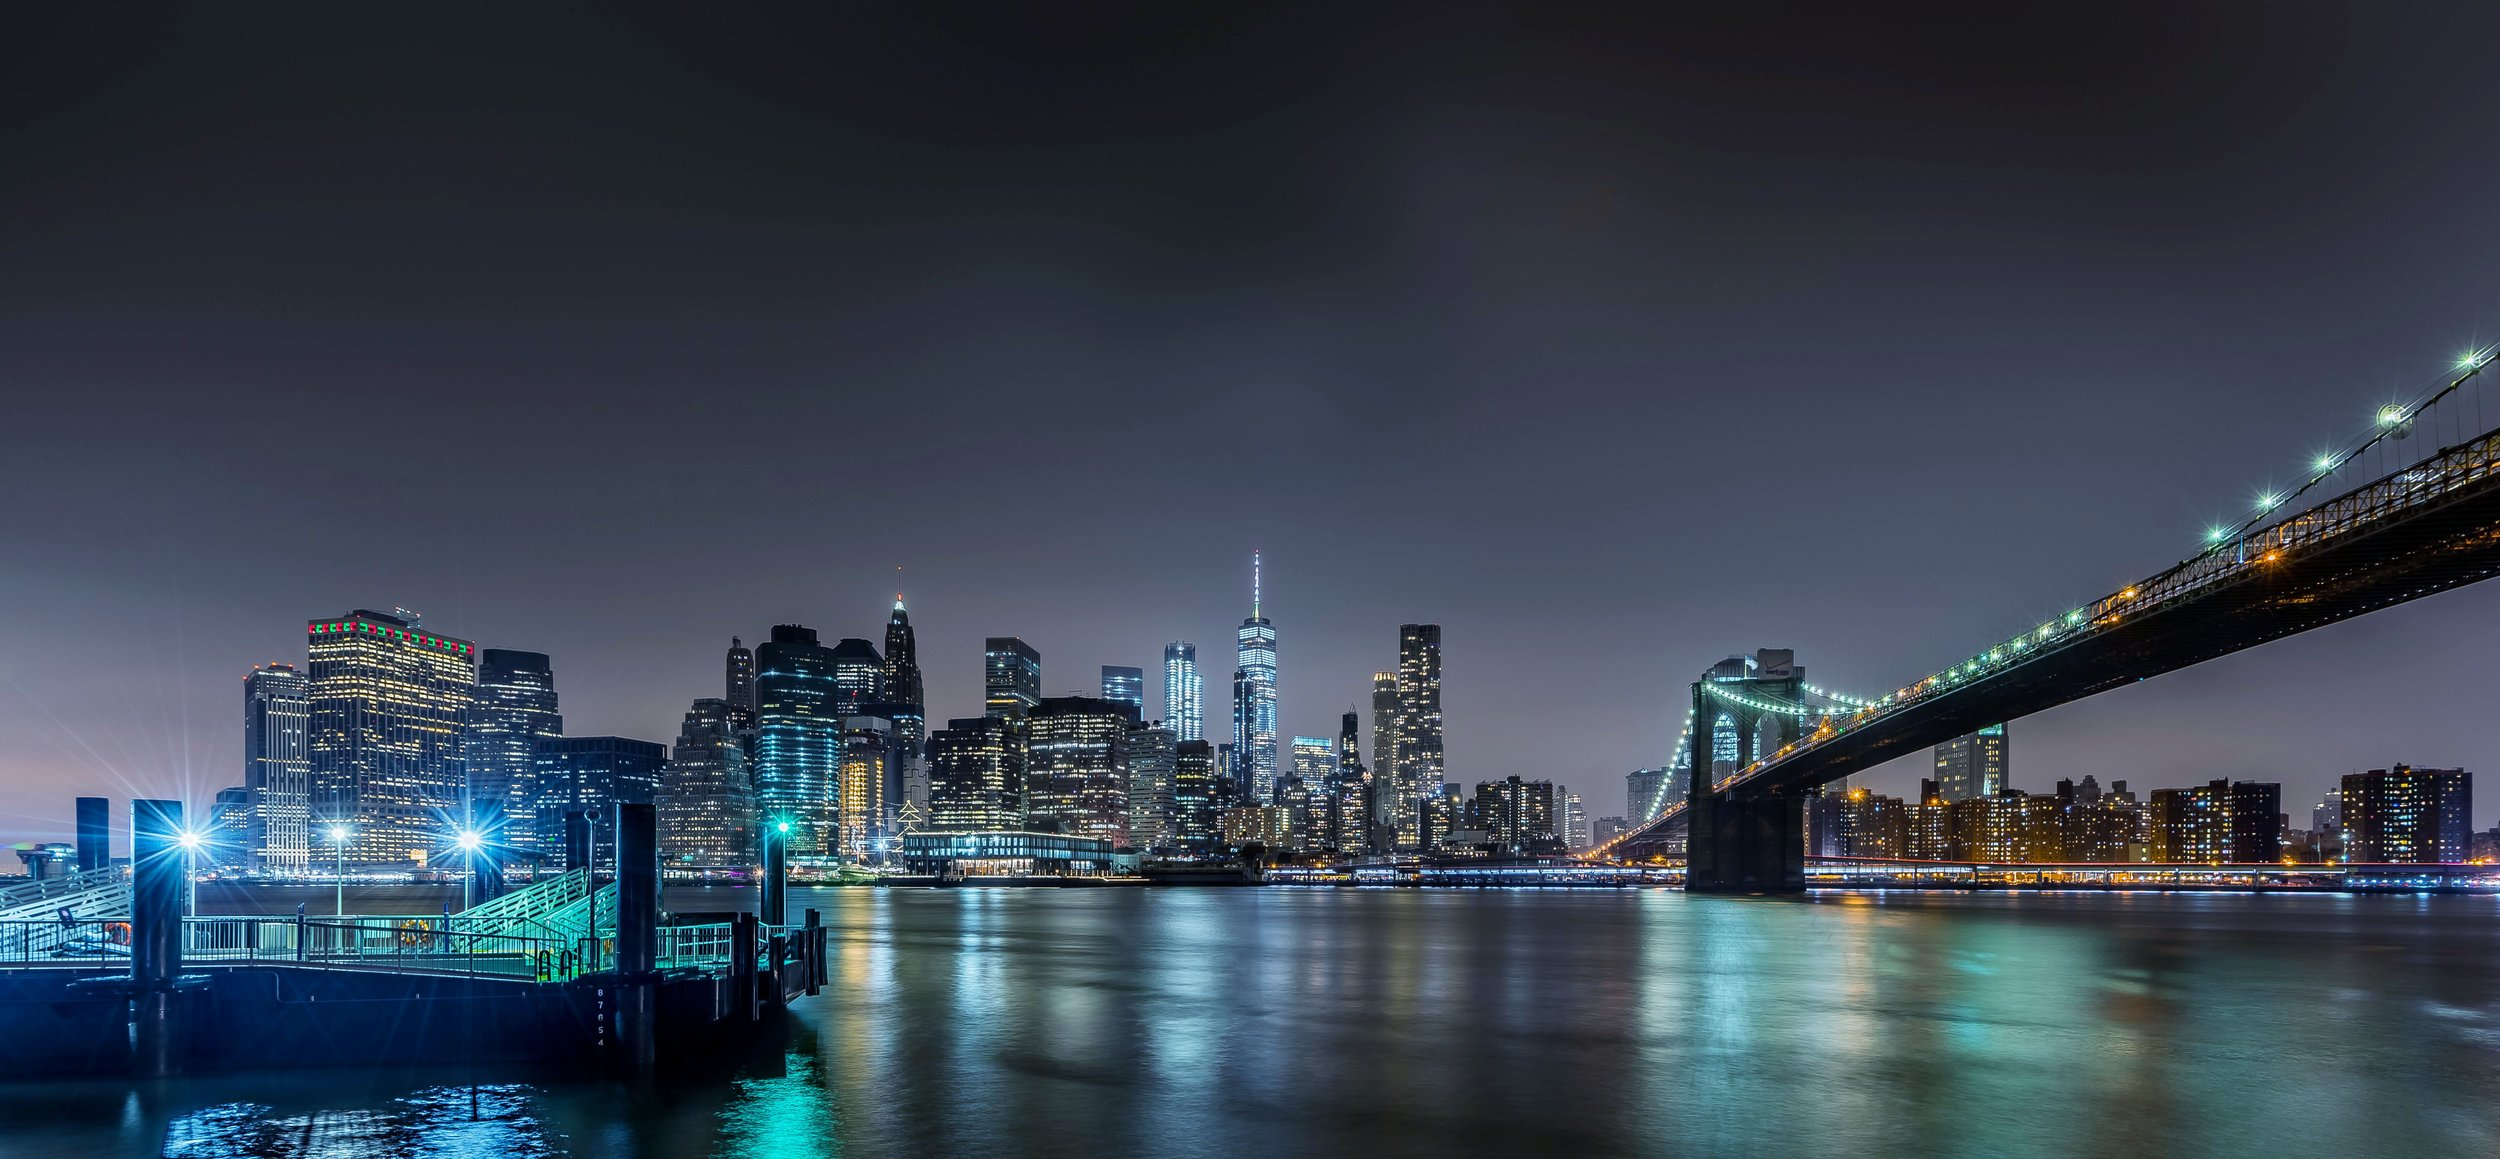 Lower Manhattan from the Brooklyn Bridge (click the image to view full size)